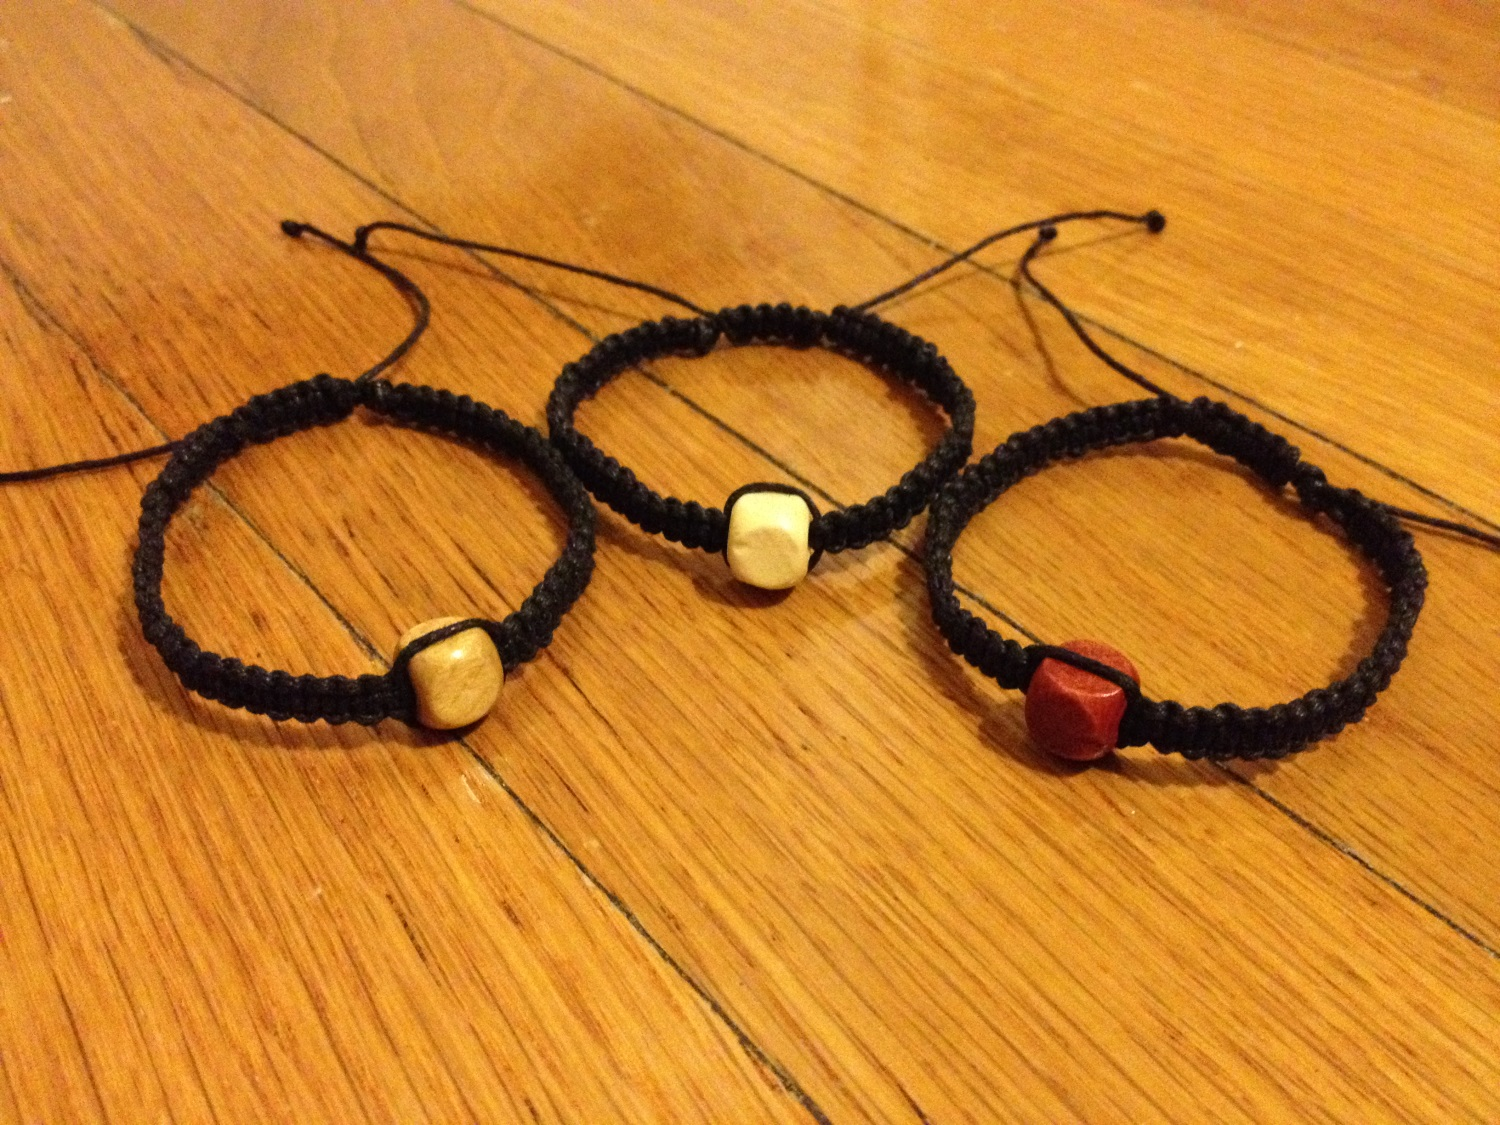 Set Of Black Waxed Hemp Cord Friendship Bracelets With Wood Cubes Beads The Jenifer Metal Shop Online Store Powered By Storenvy